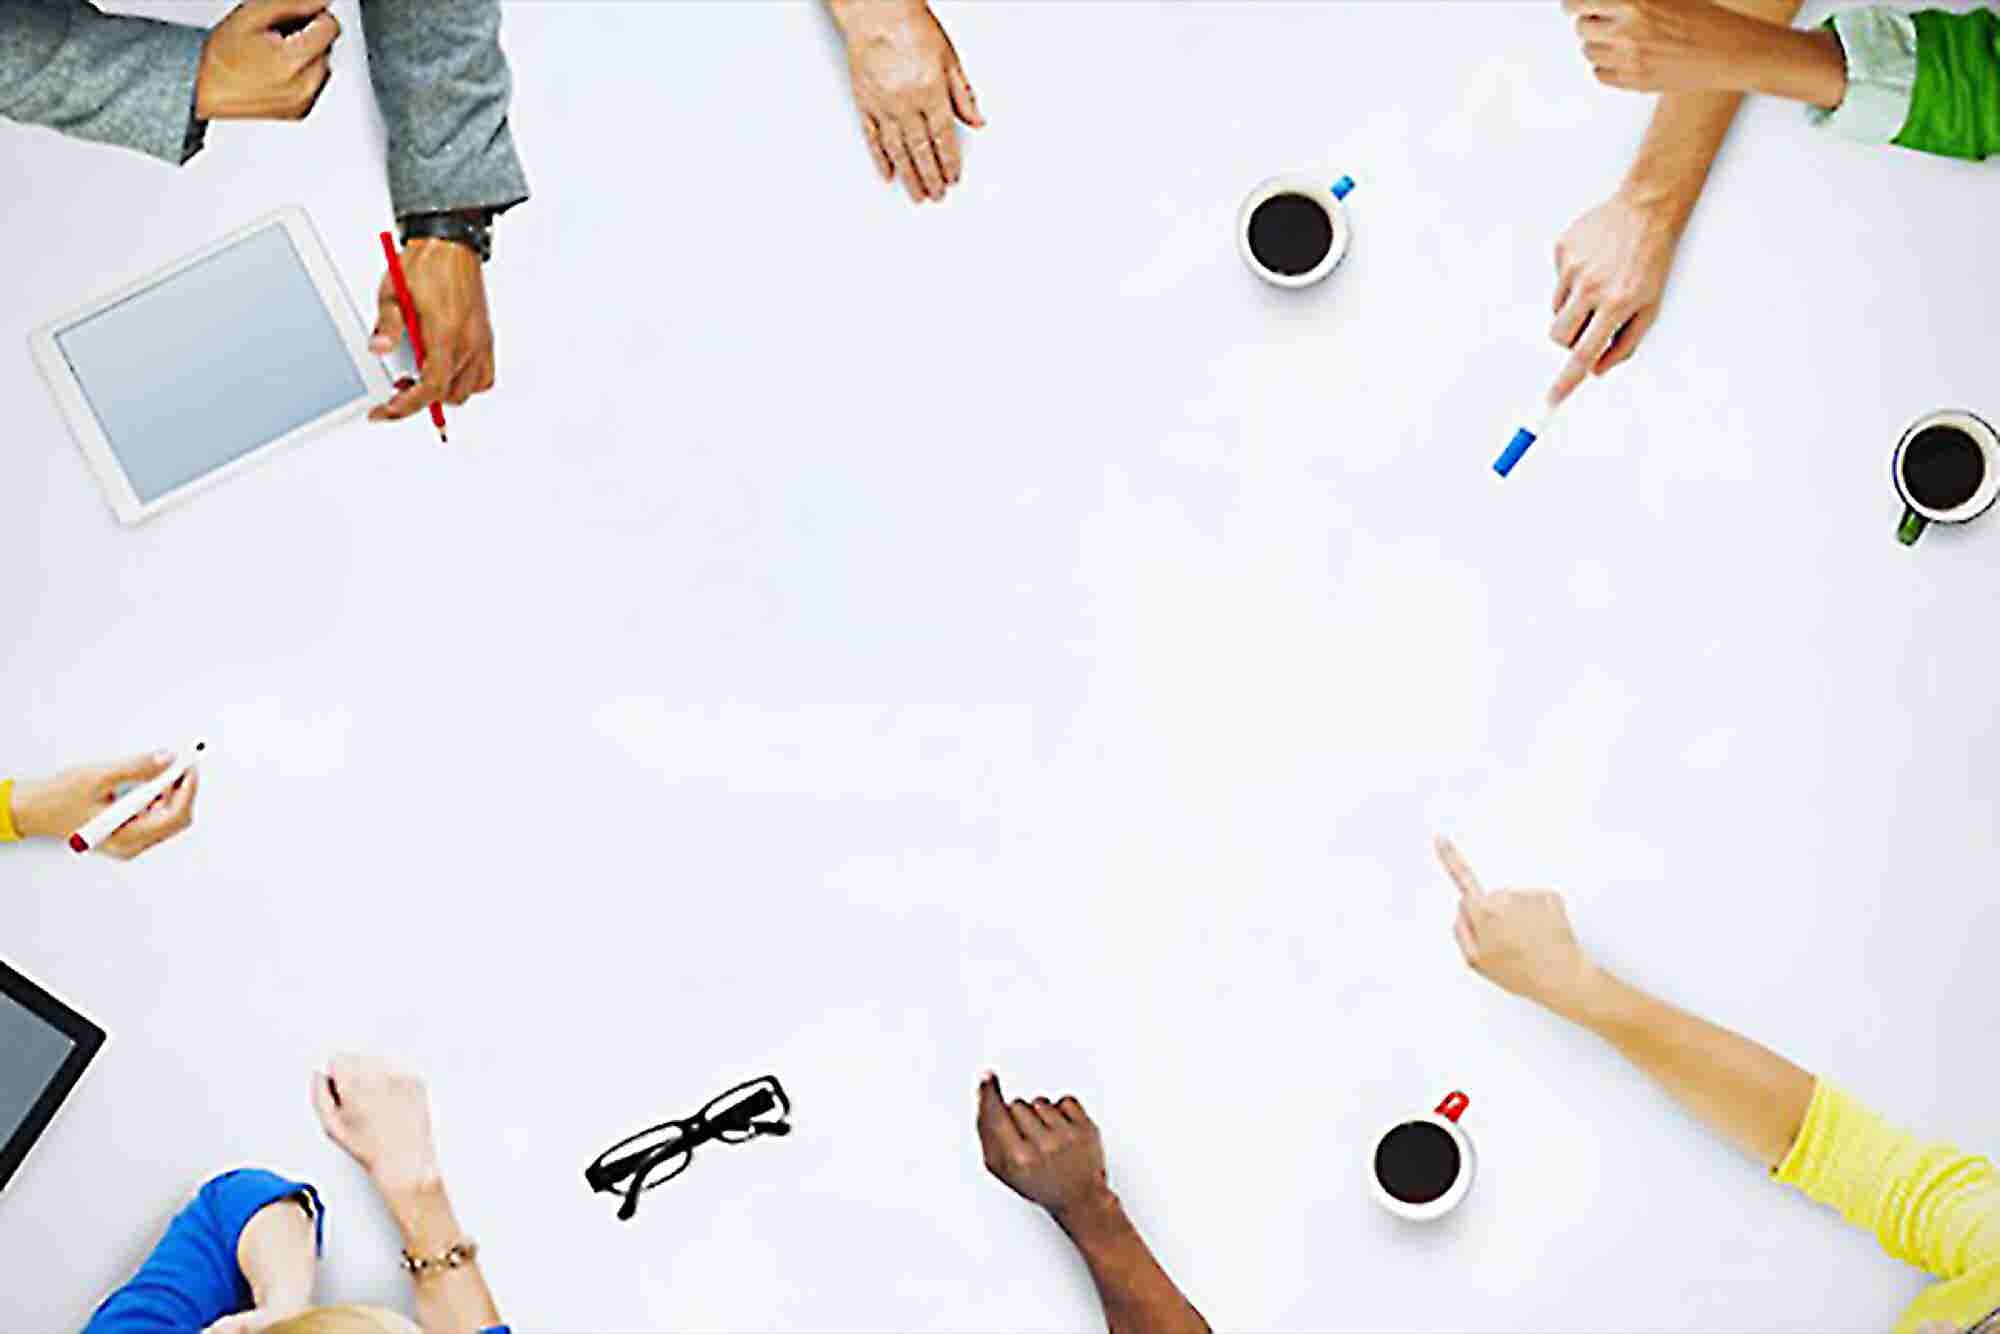 5 Must-Use Tools for Brainstorming Company Names